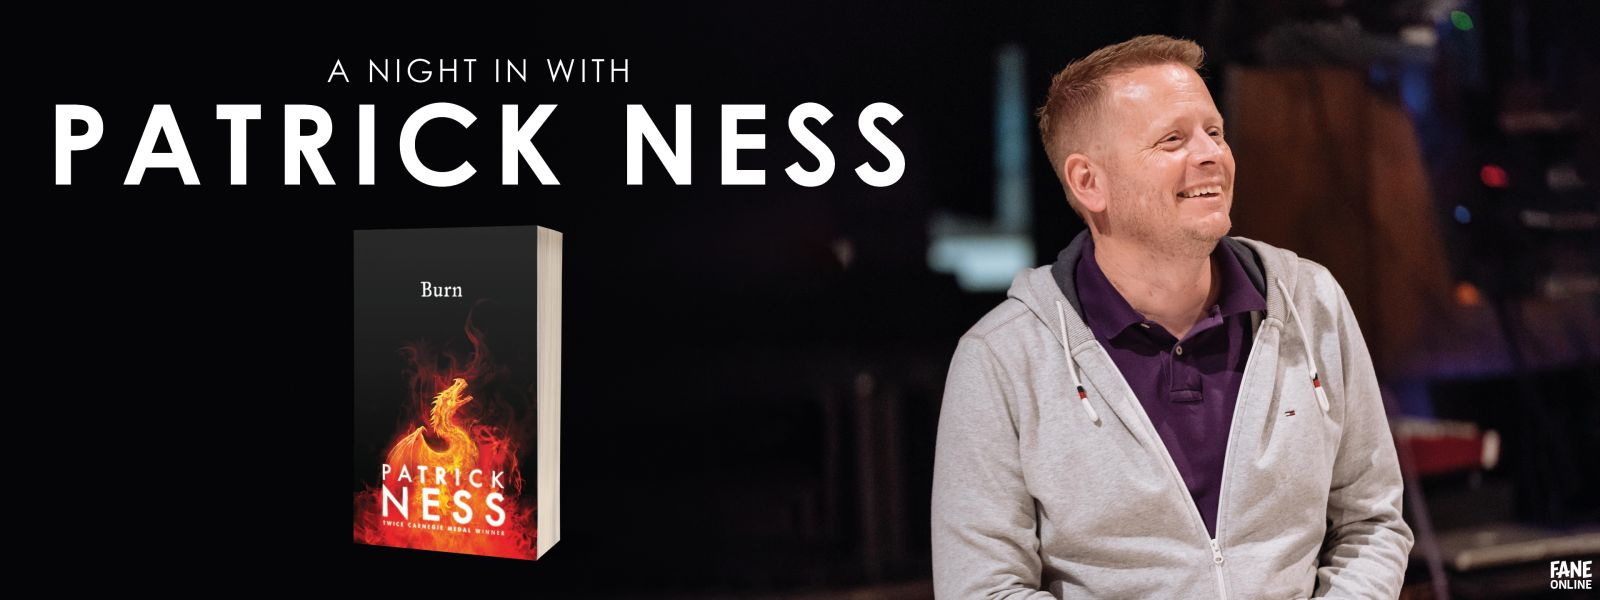 A Night In with Patrick Ness